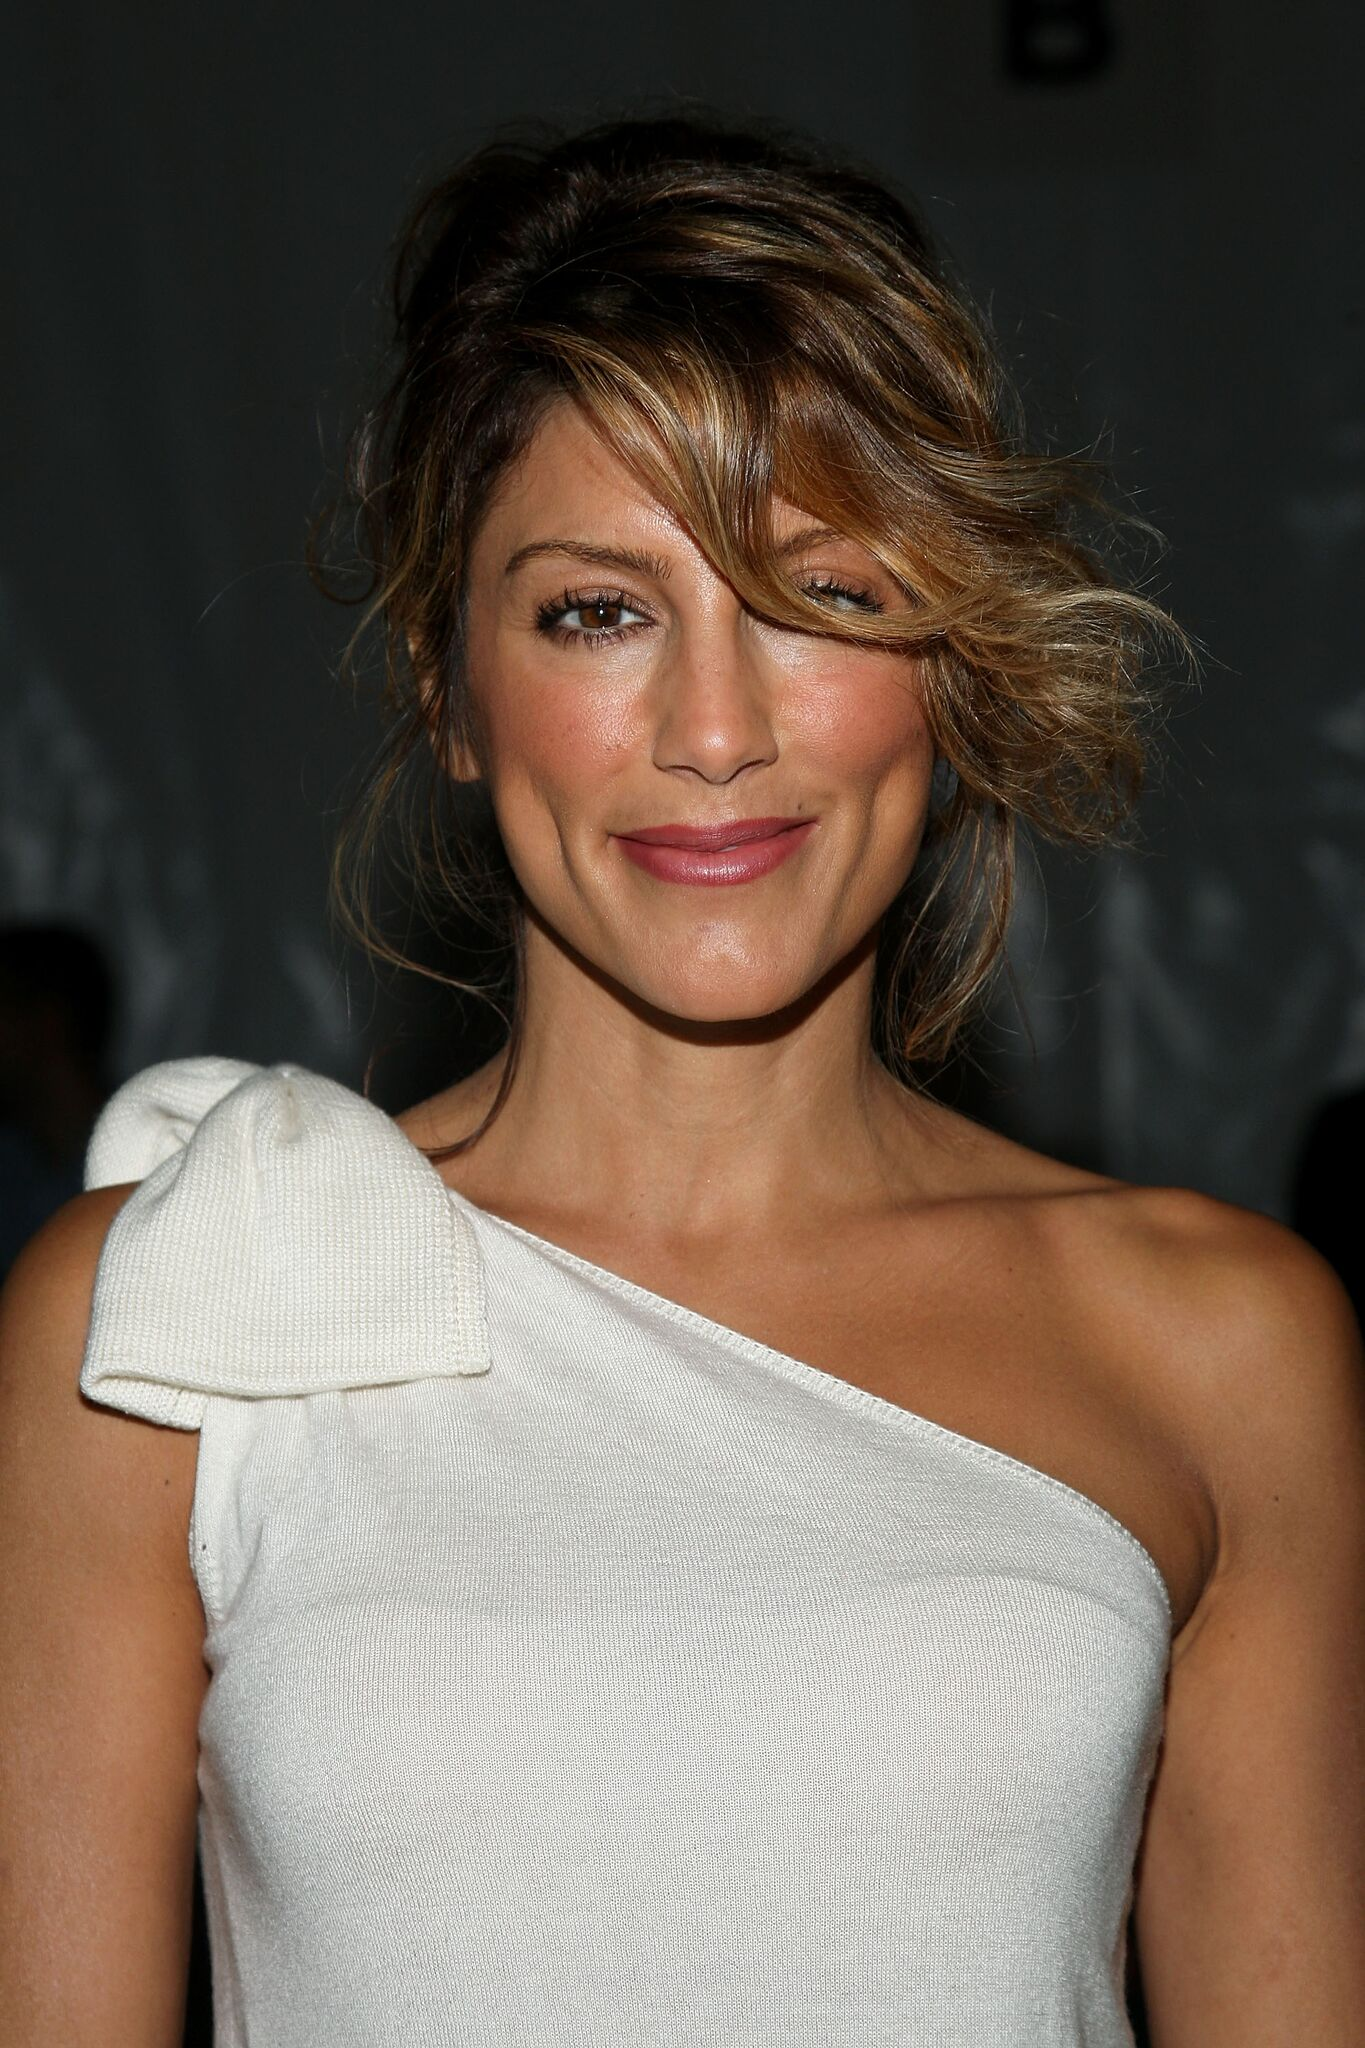 Actress Jennifer Esposito attends the Lela Rose Spring 2010 Fashion Show at Bryant Park | Getty Images